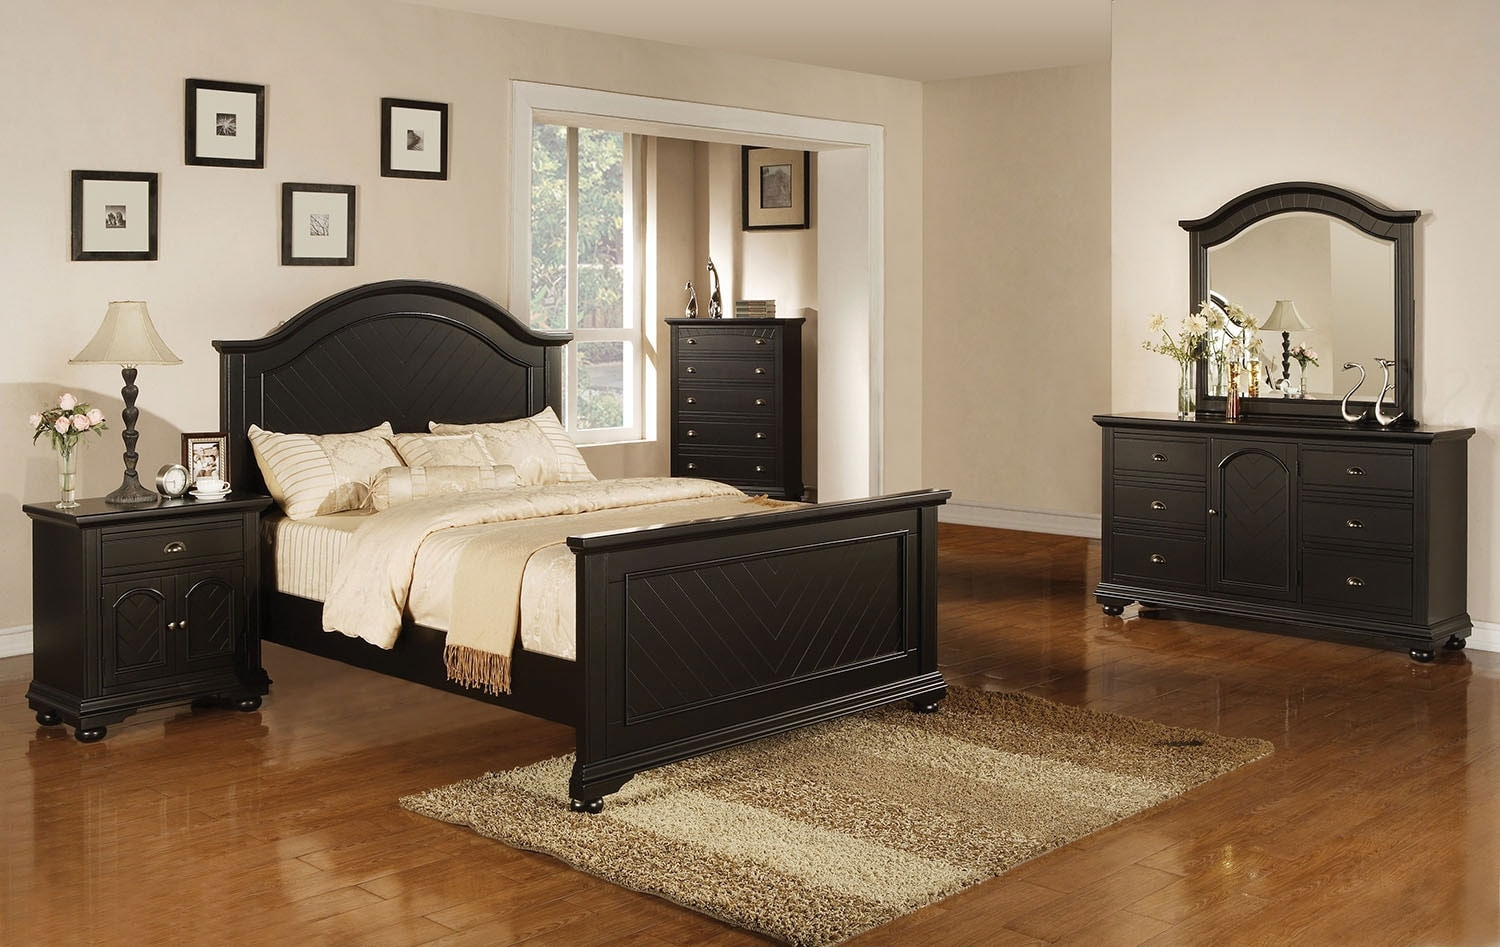 Bedroom Furniture - Brook Black 8-Piece Queen Bedroom Set